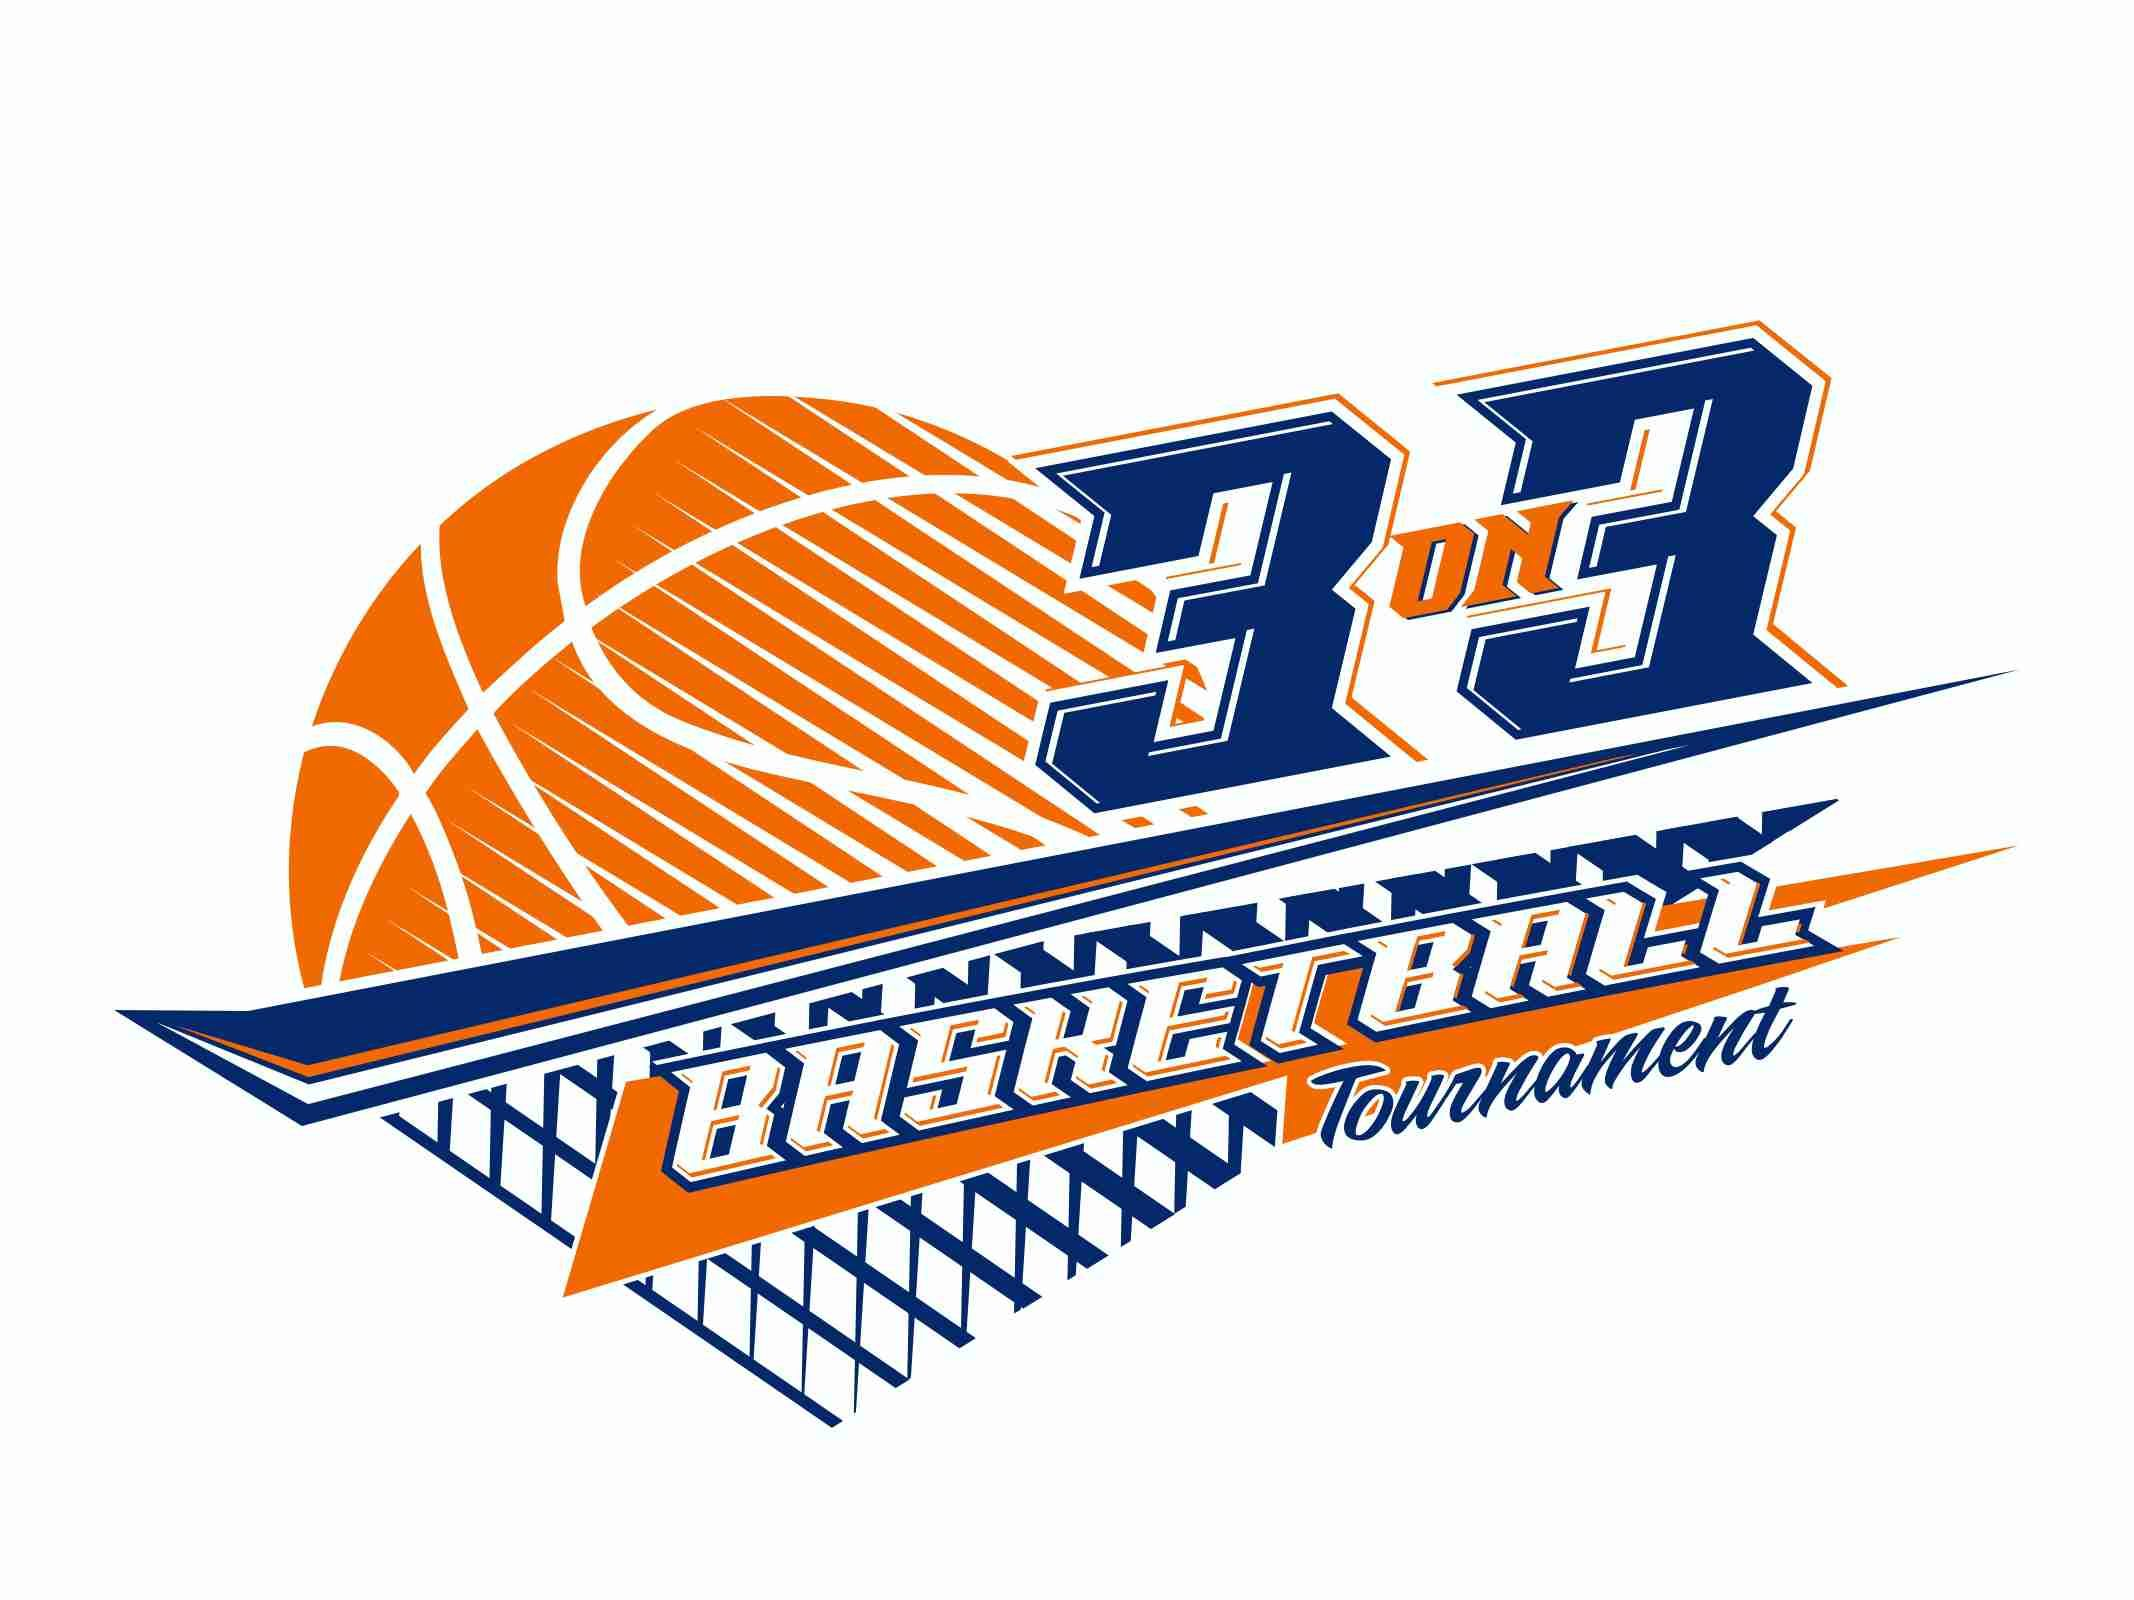 3 On 3 Basketball Tournament Basketball Logo Design Basketball Tee Shirts Basketball T Shirt Designs